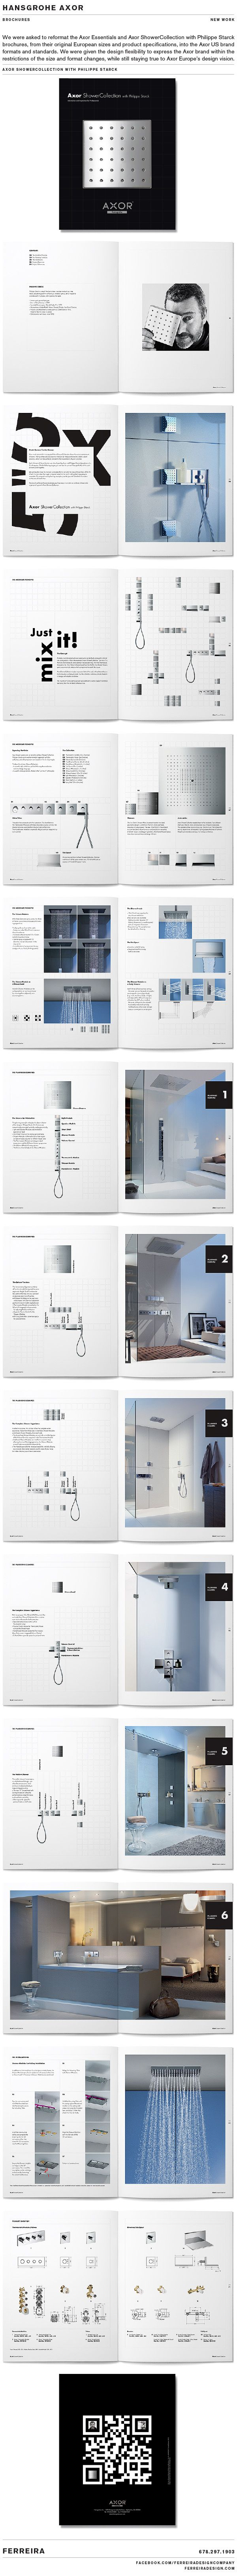 Axor Shower Collection with Philippe Starck. Brochure by Ferreira Design…